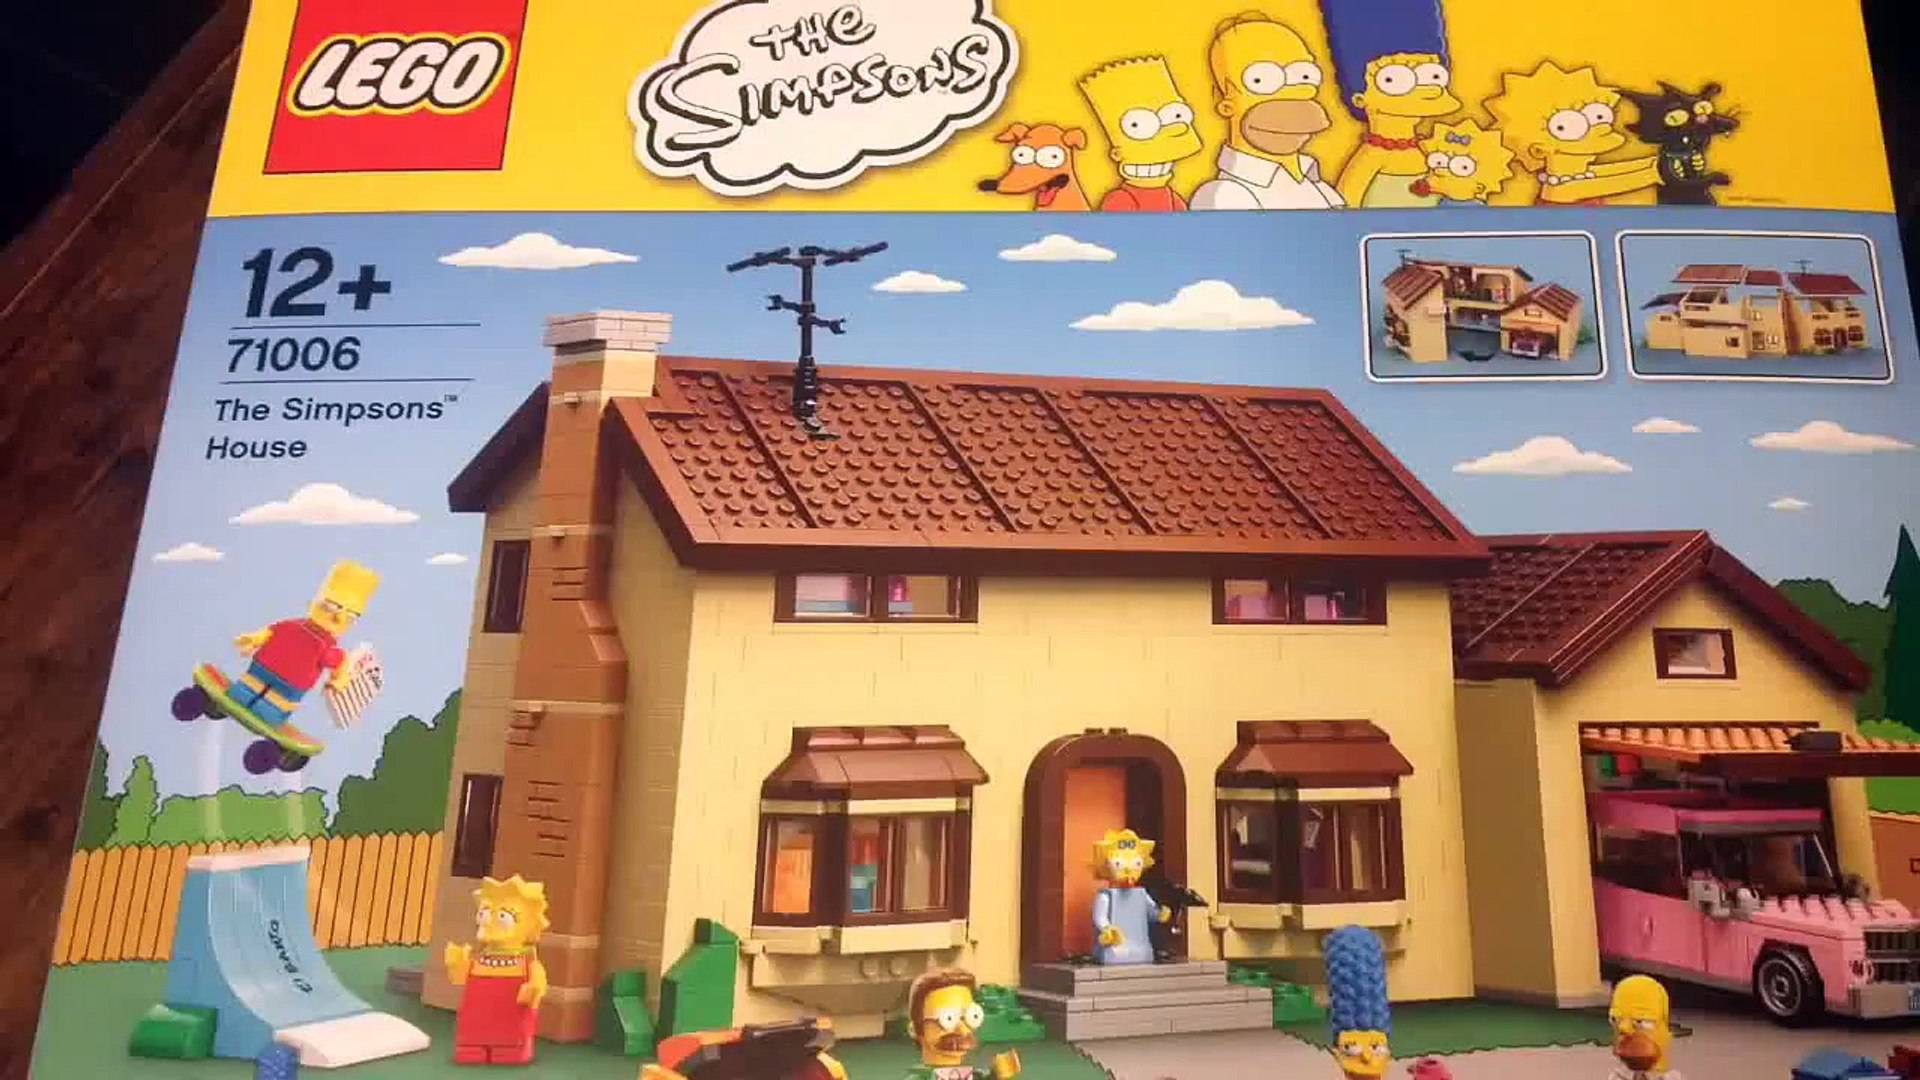 The Simpsons House LEGO 71006 The Simpsons STICKER SHEET